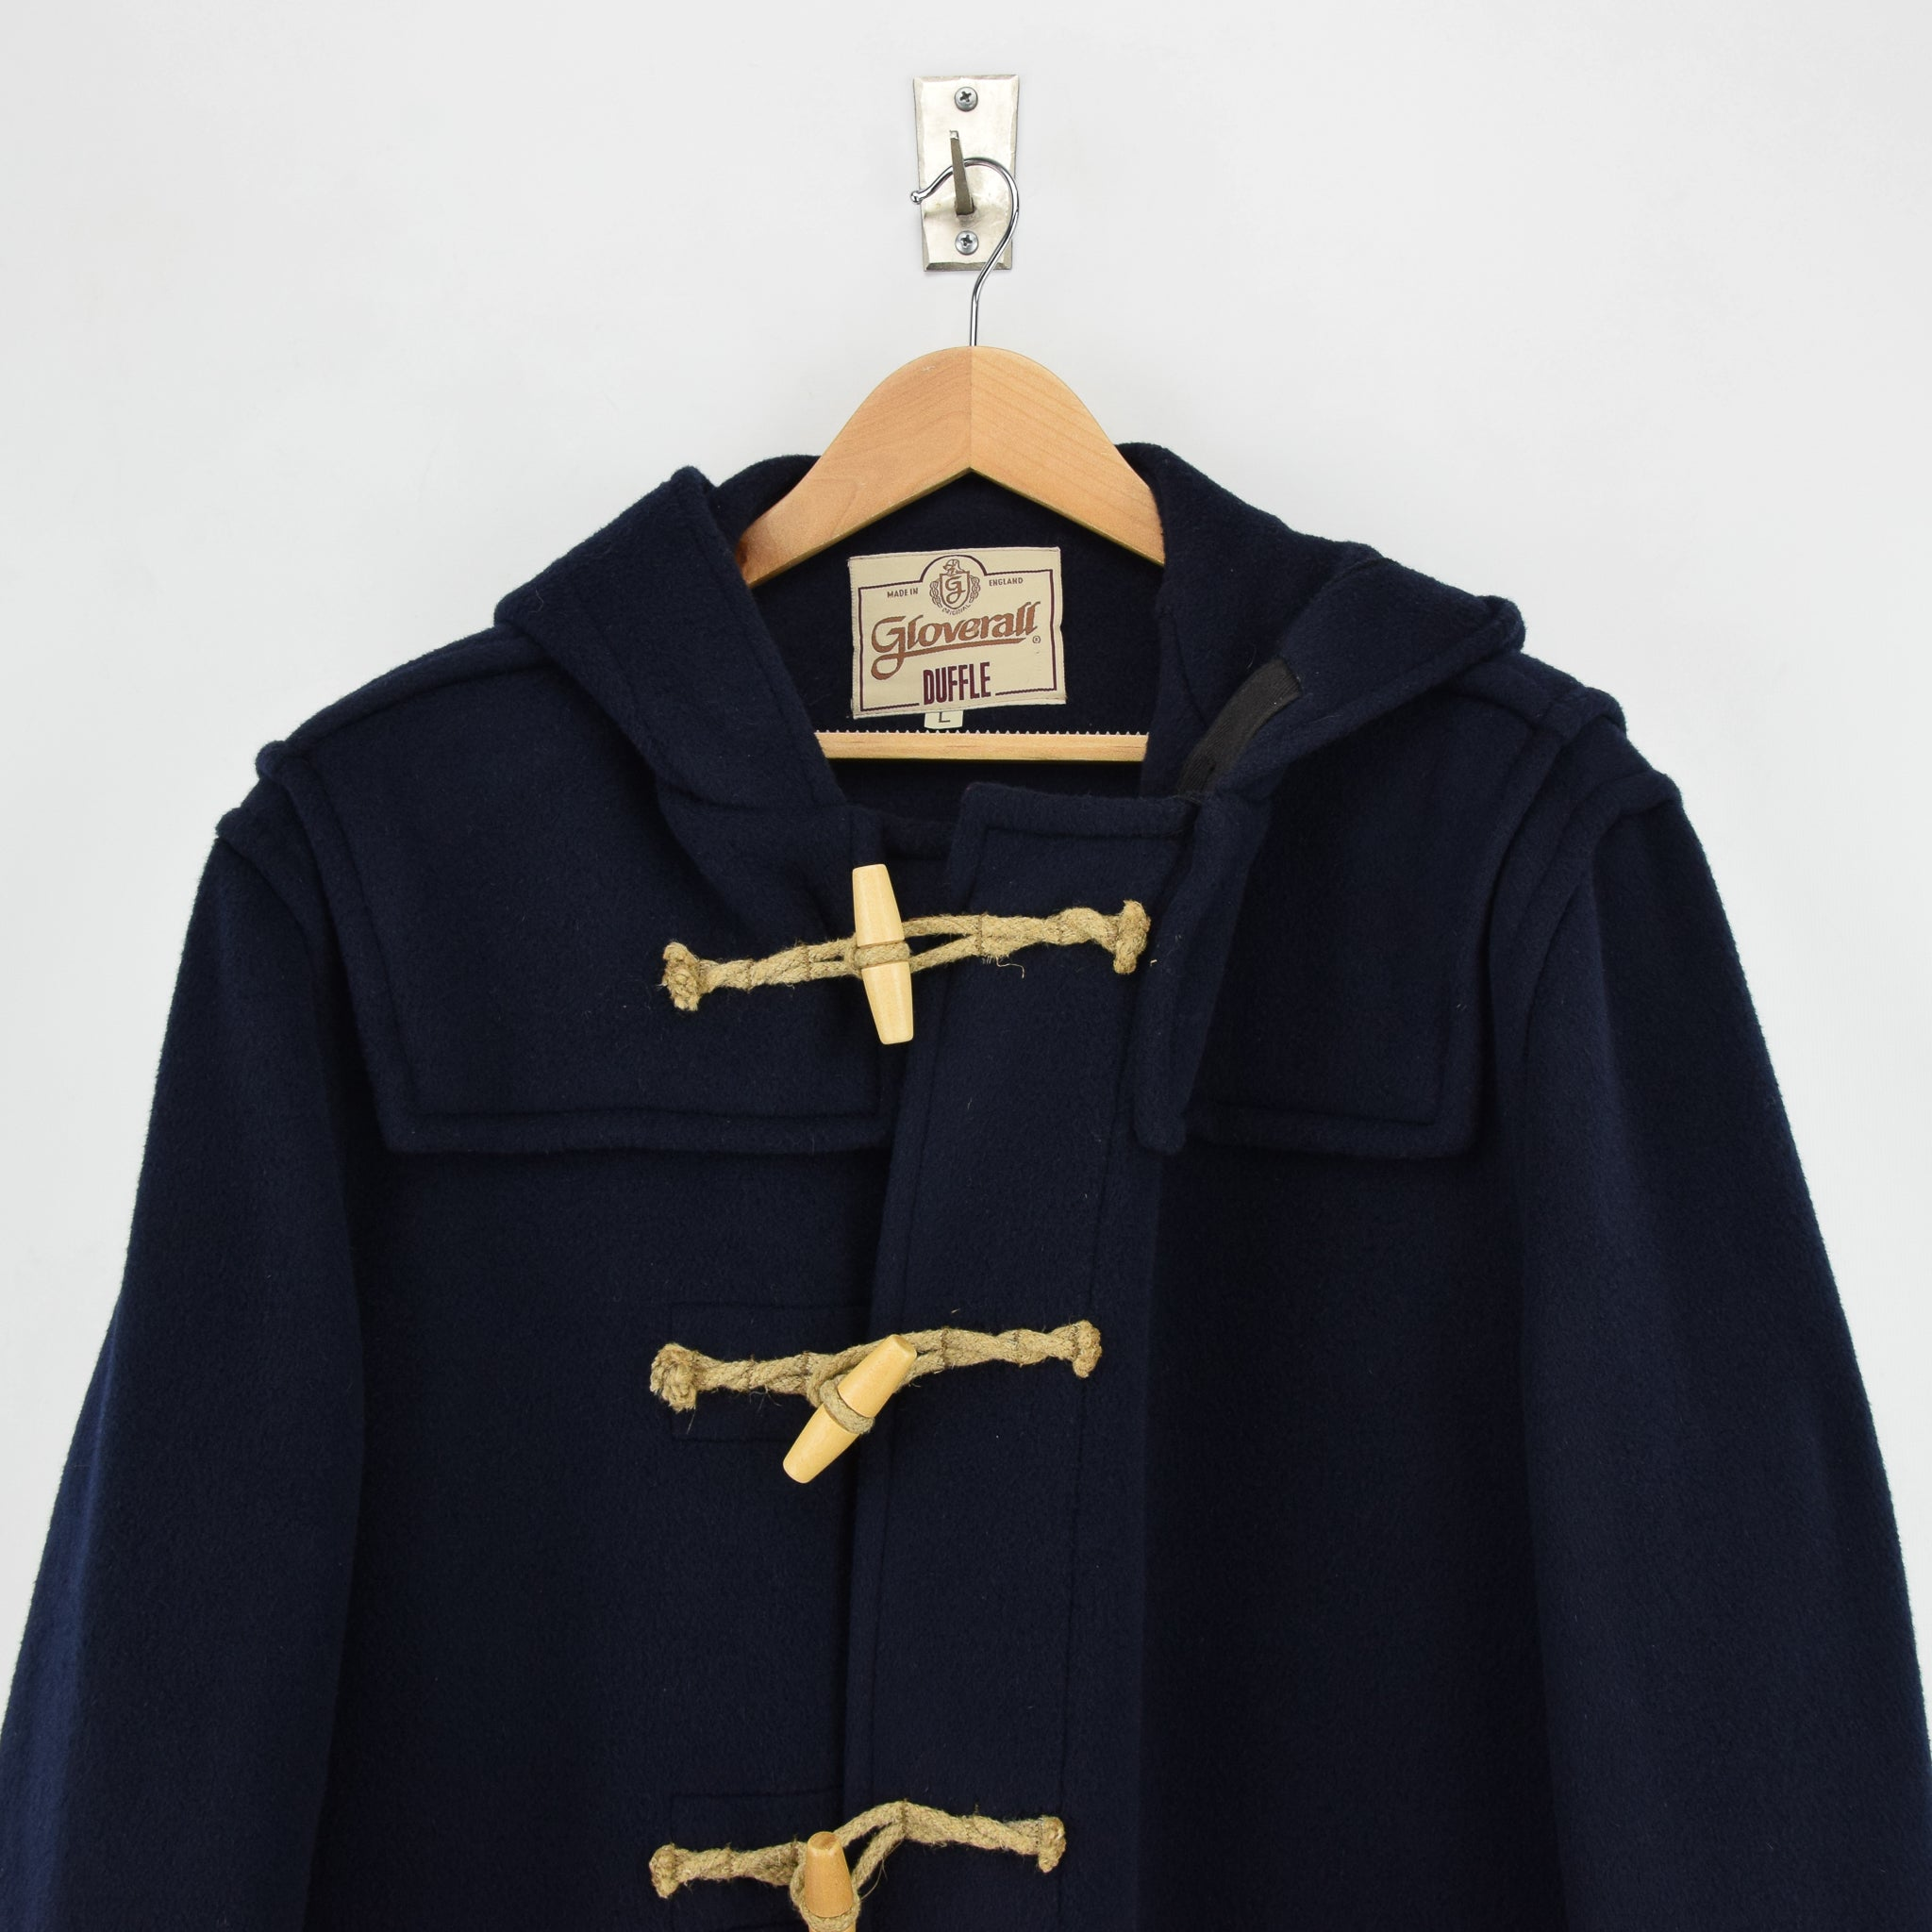 Vintage Gloverall Navy Blue Hooded Duffle Coat Jacket Made in England L / XL chest